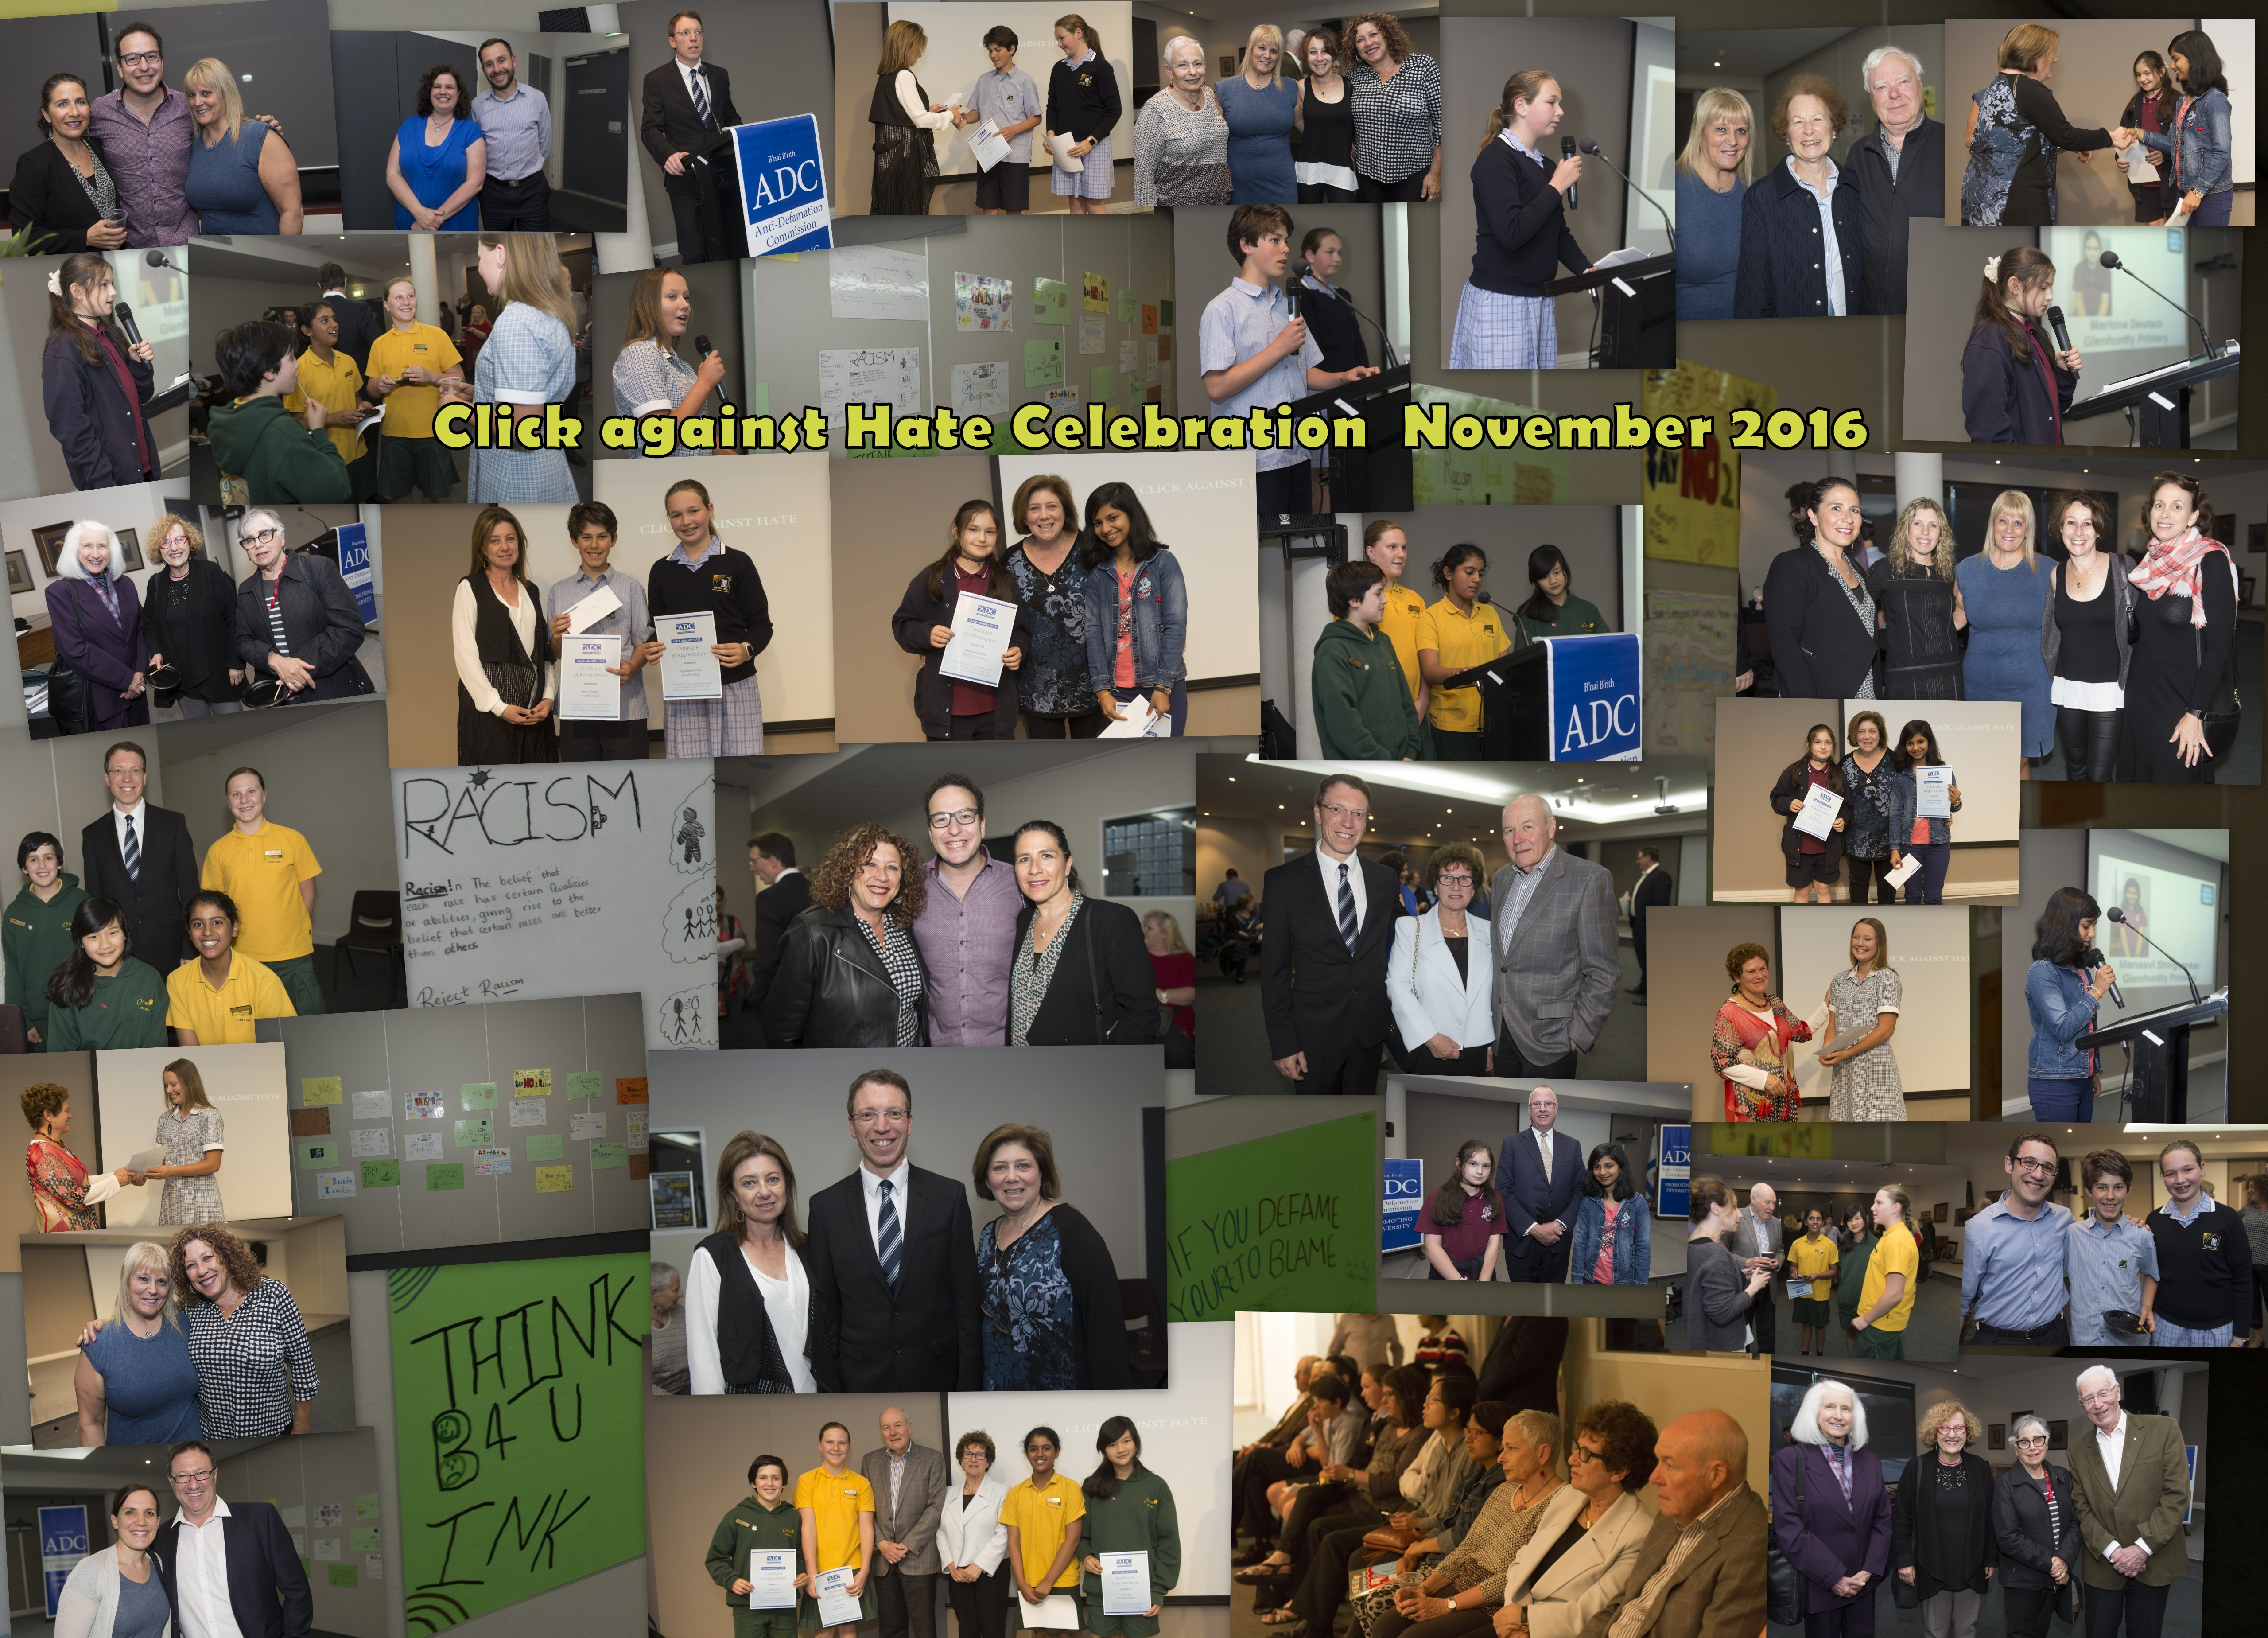 Click against Hate celebration Collage